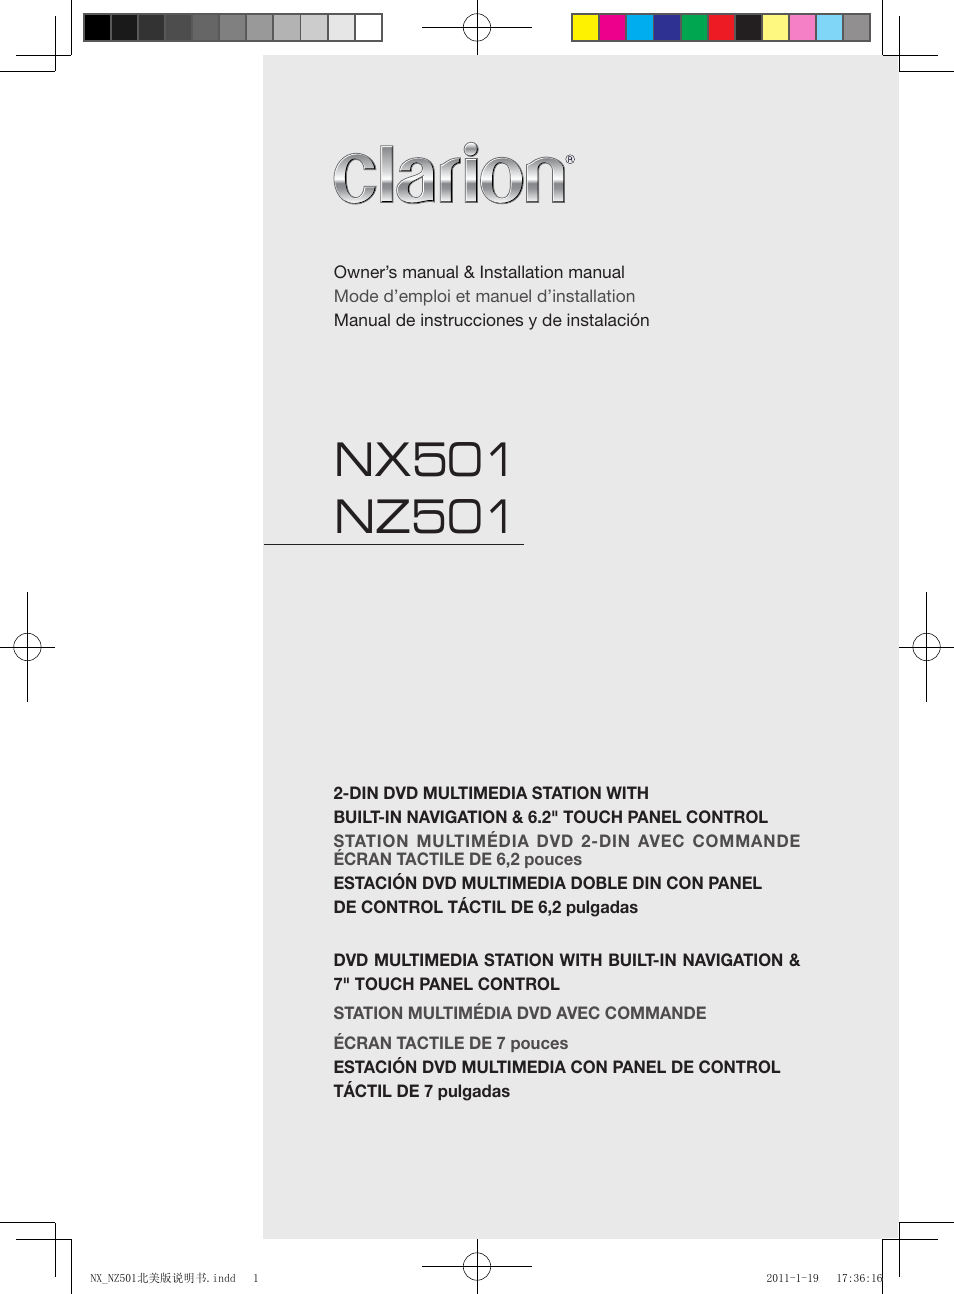 clarion nx501 user manual 159 pages also for nz501 Instruction Manual Example Owner's Manual